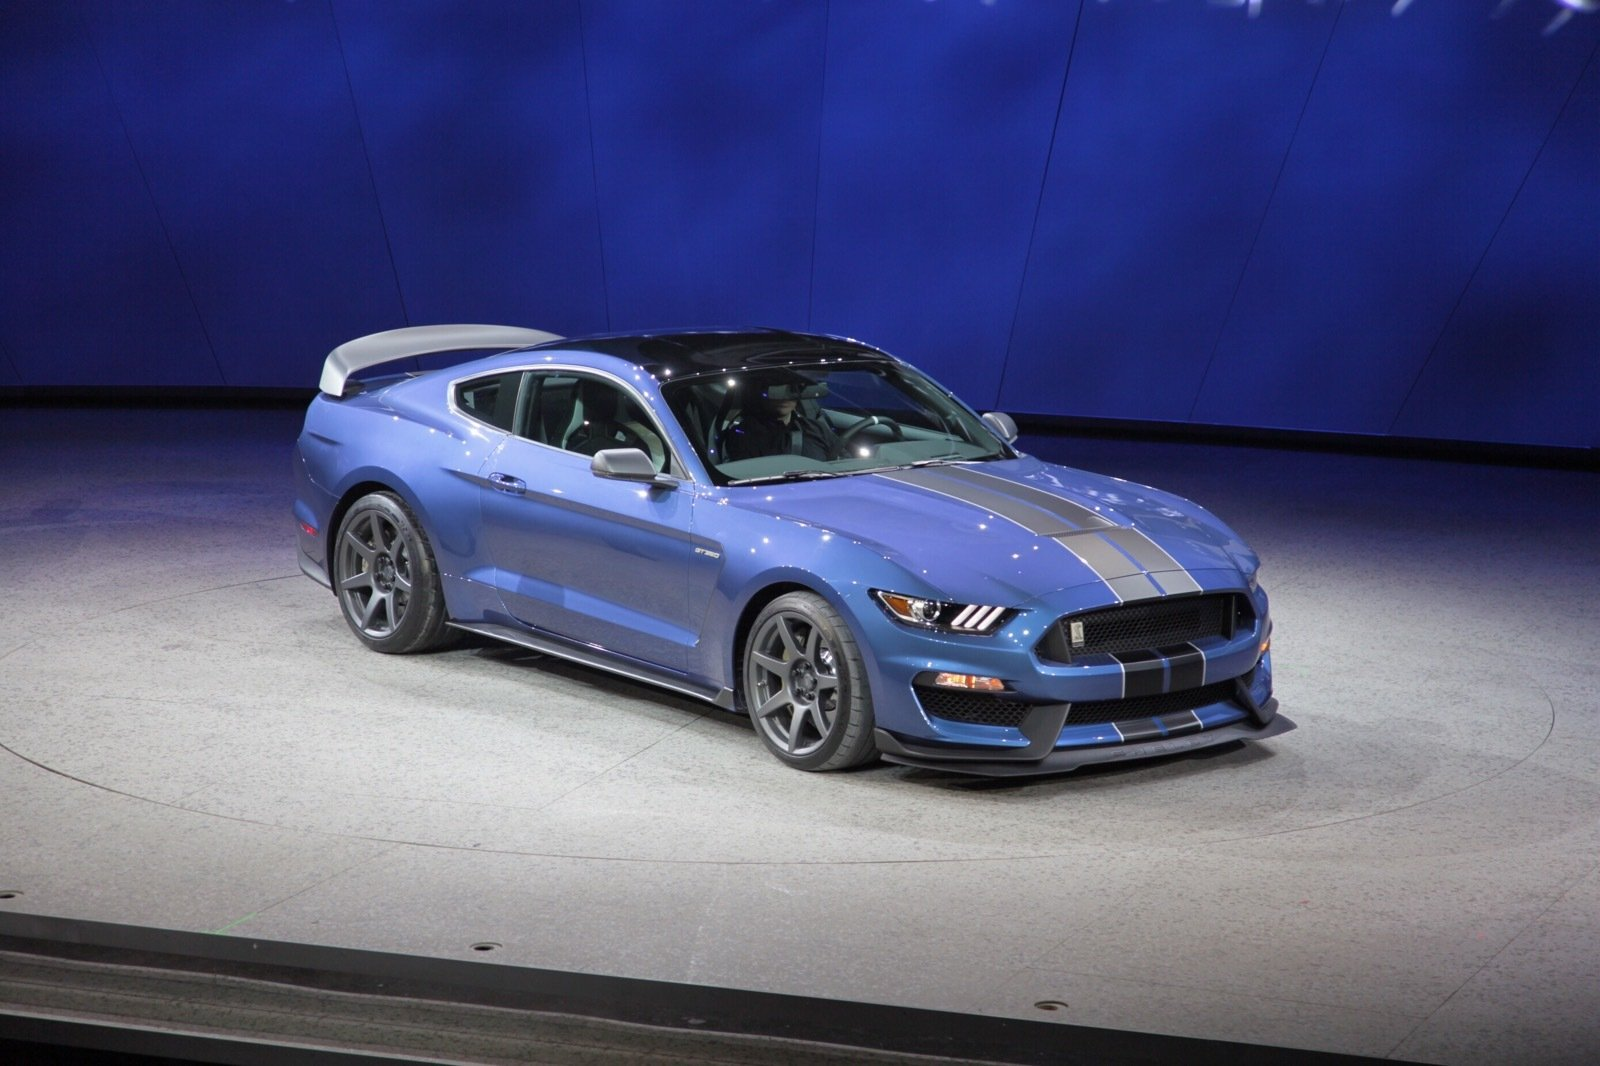 2016 ford shelby gt350r mustang picture 610324 car review top speed. Black Bedroom Furniture Sets. Home Design Ideas